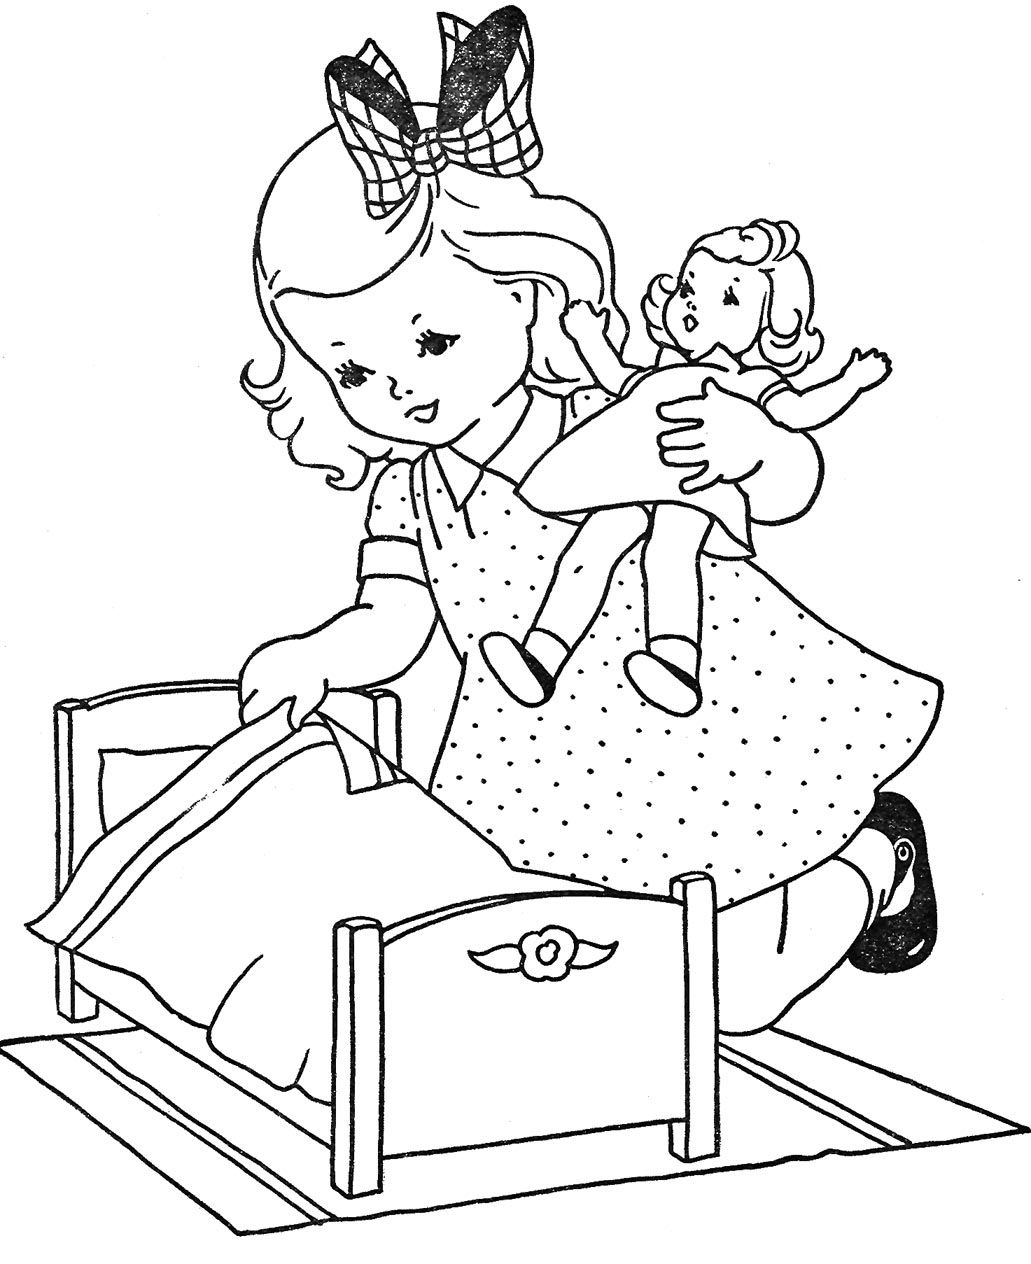 coloring clipart for kids doll coloring pages best coloring pages for kids clipart for coloring kids